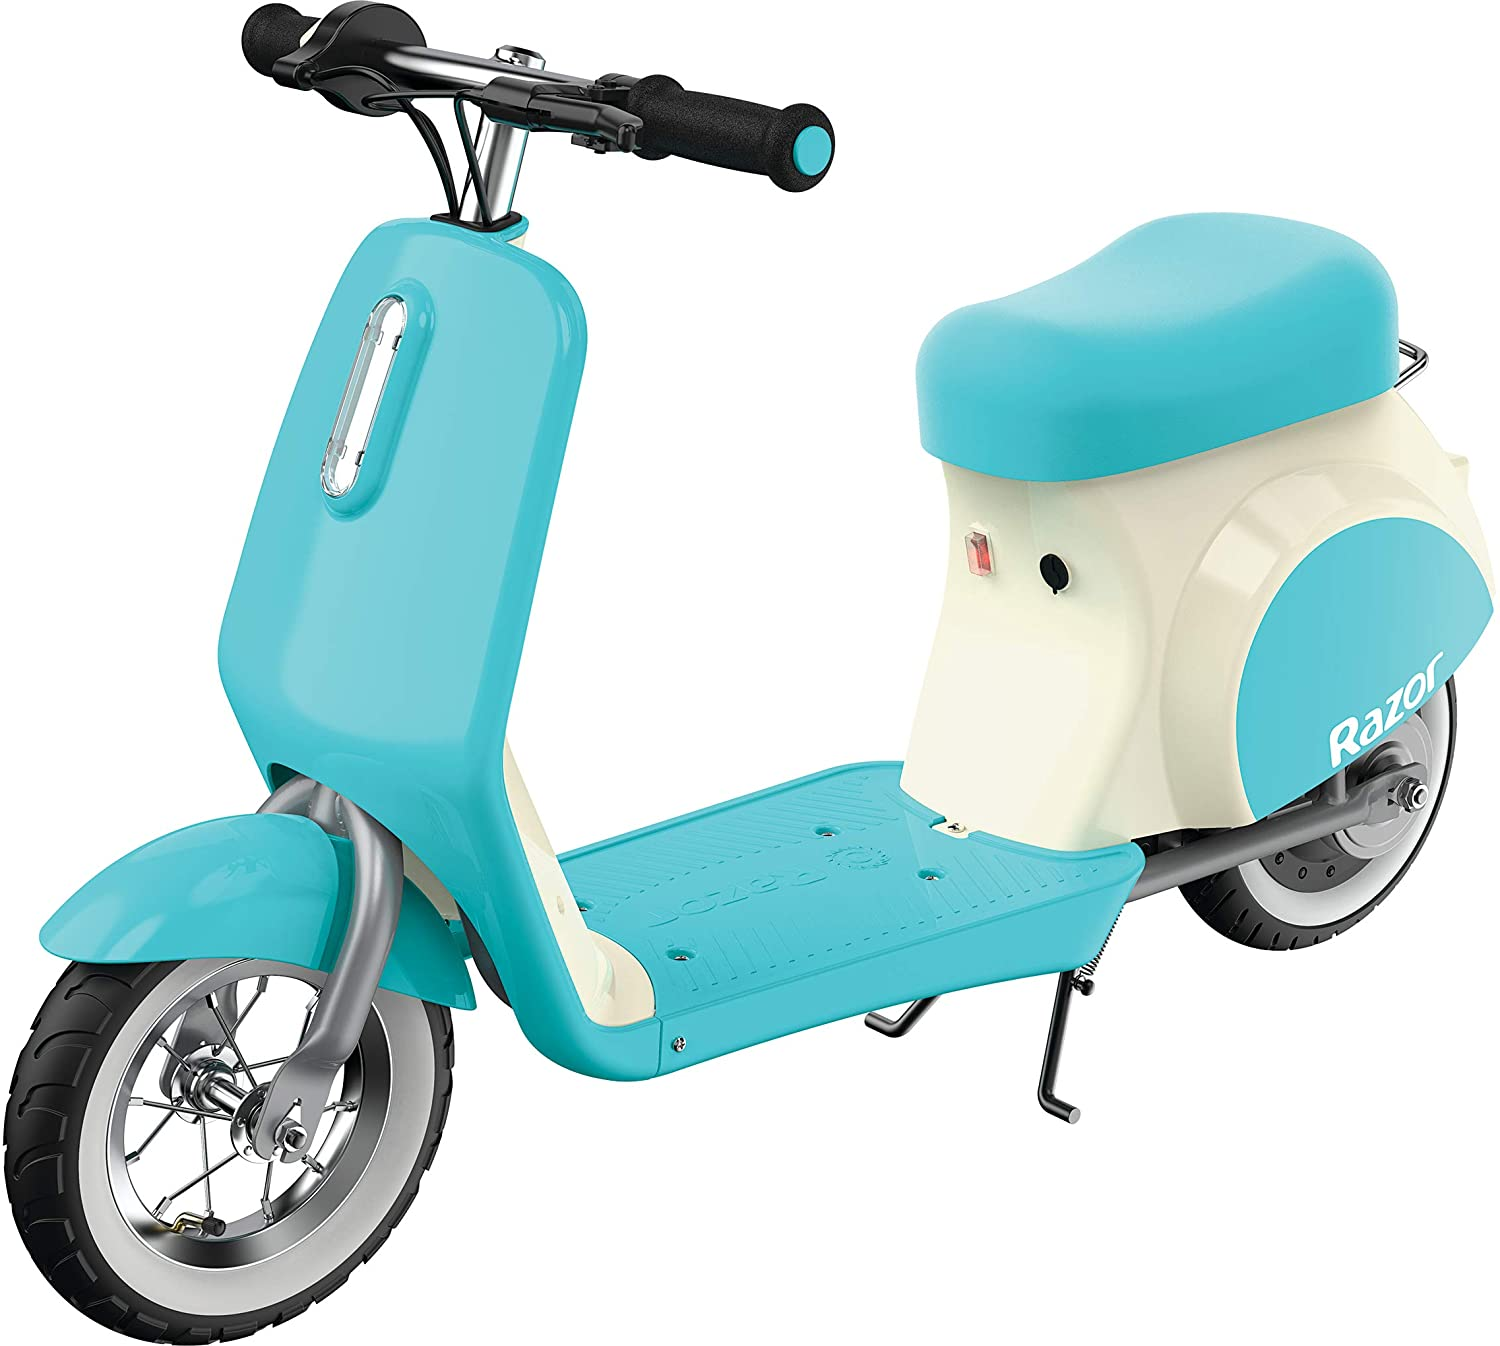 Razor Pocket Mod Miniature Euro-Style Electric Scooter